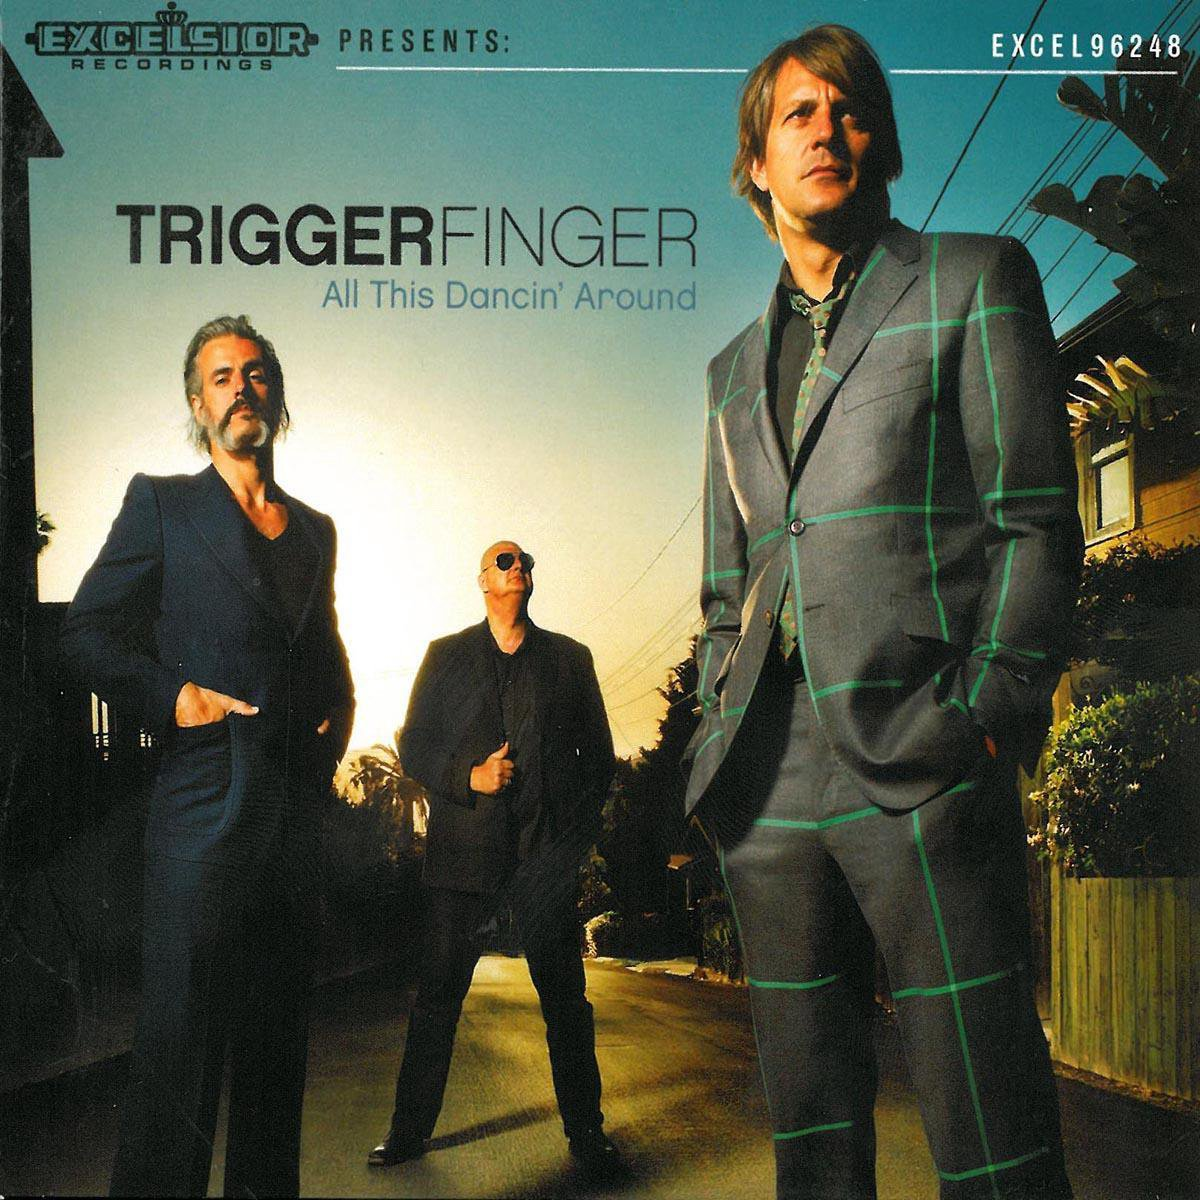 All This Dancin' Around (LP+Cd+Poster) - Triggerfinger